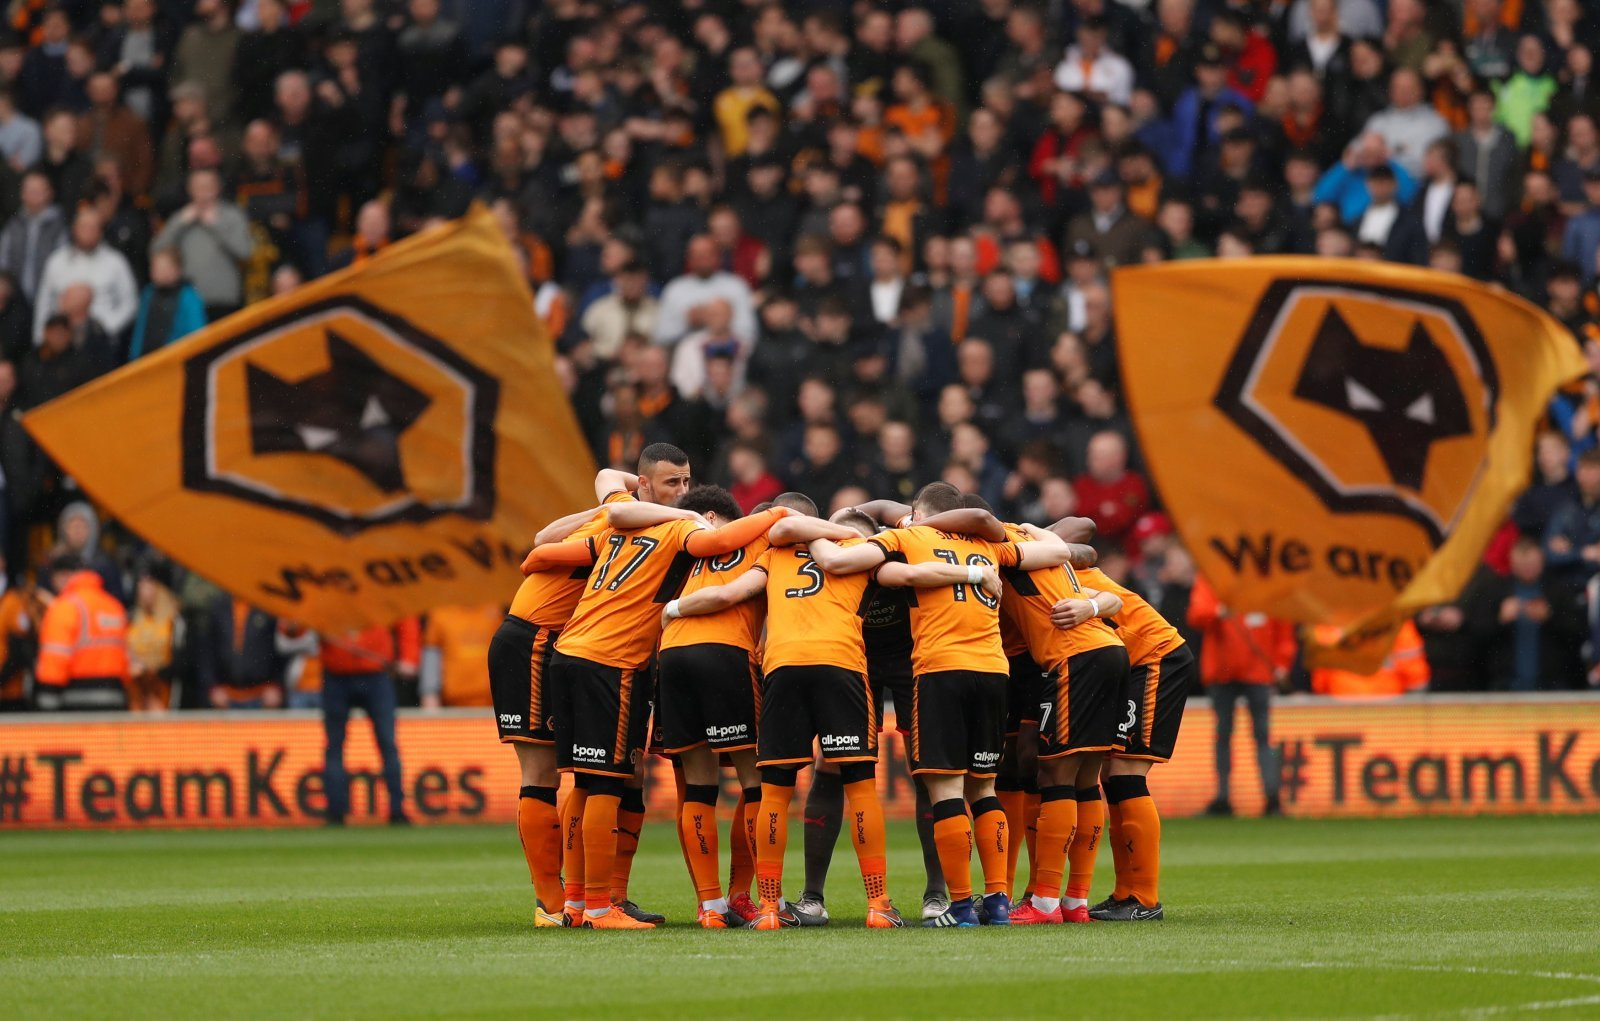 Wolves: Fans call for much-changed starting line-up for Carabao Cup trip to Aston Villa